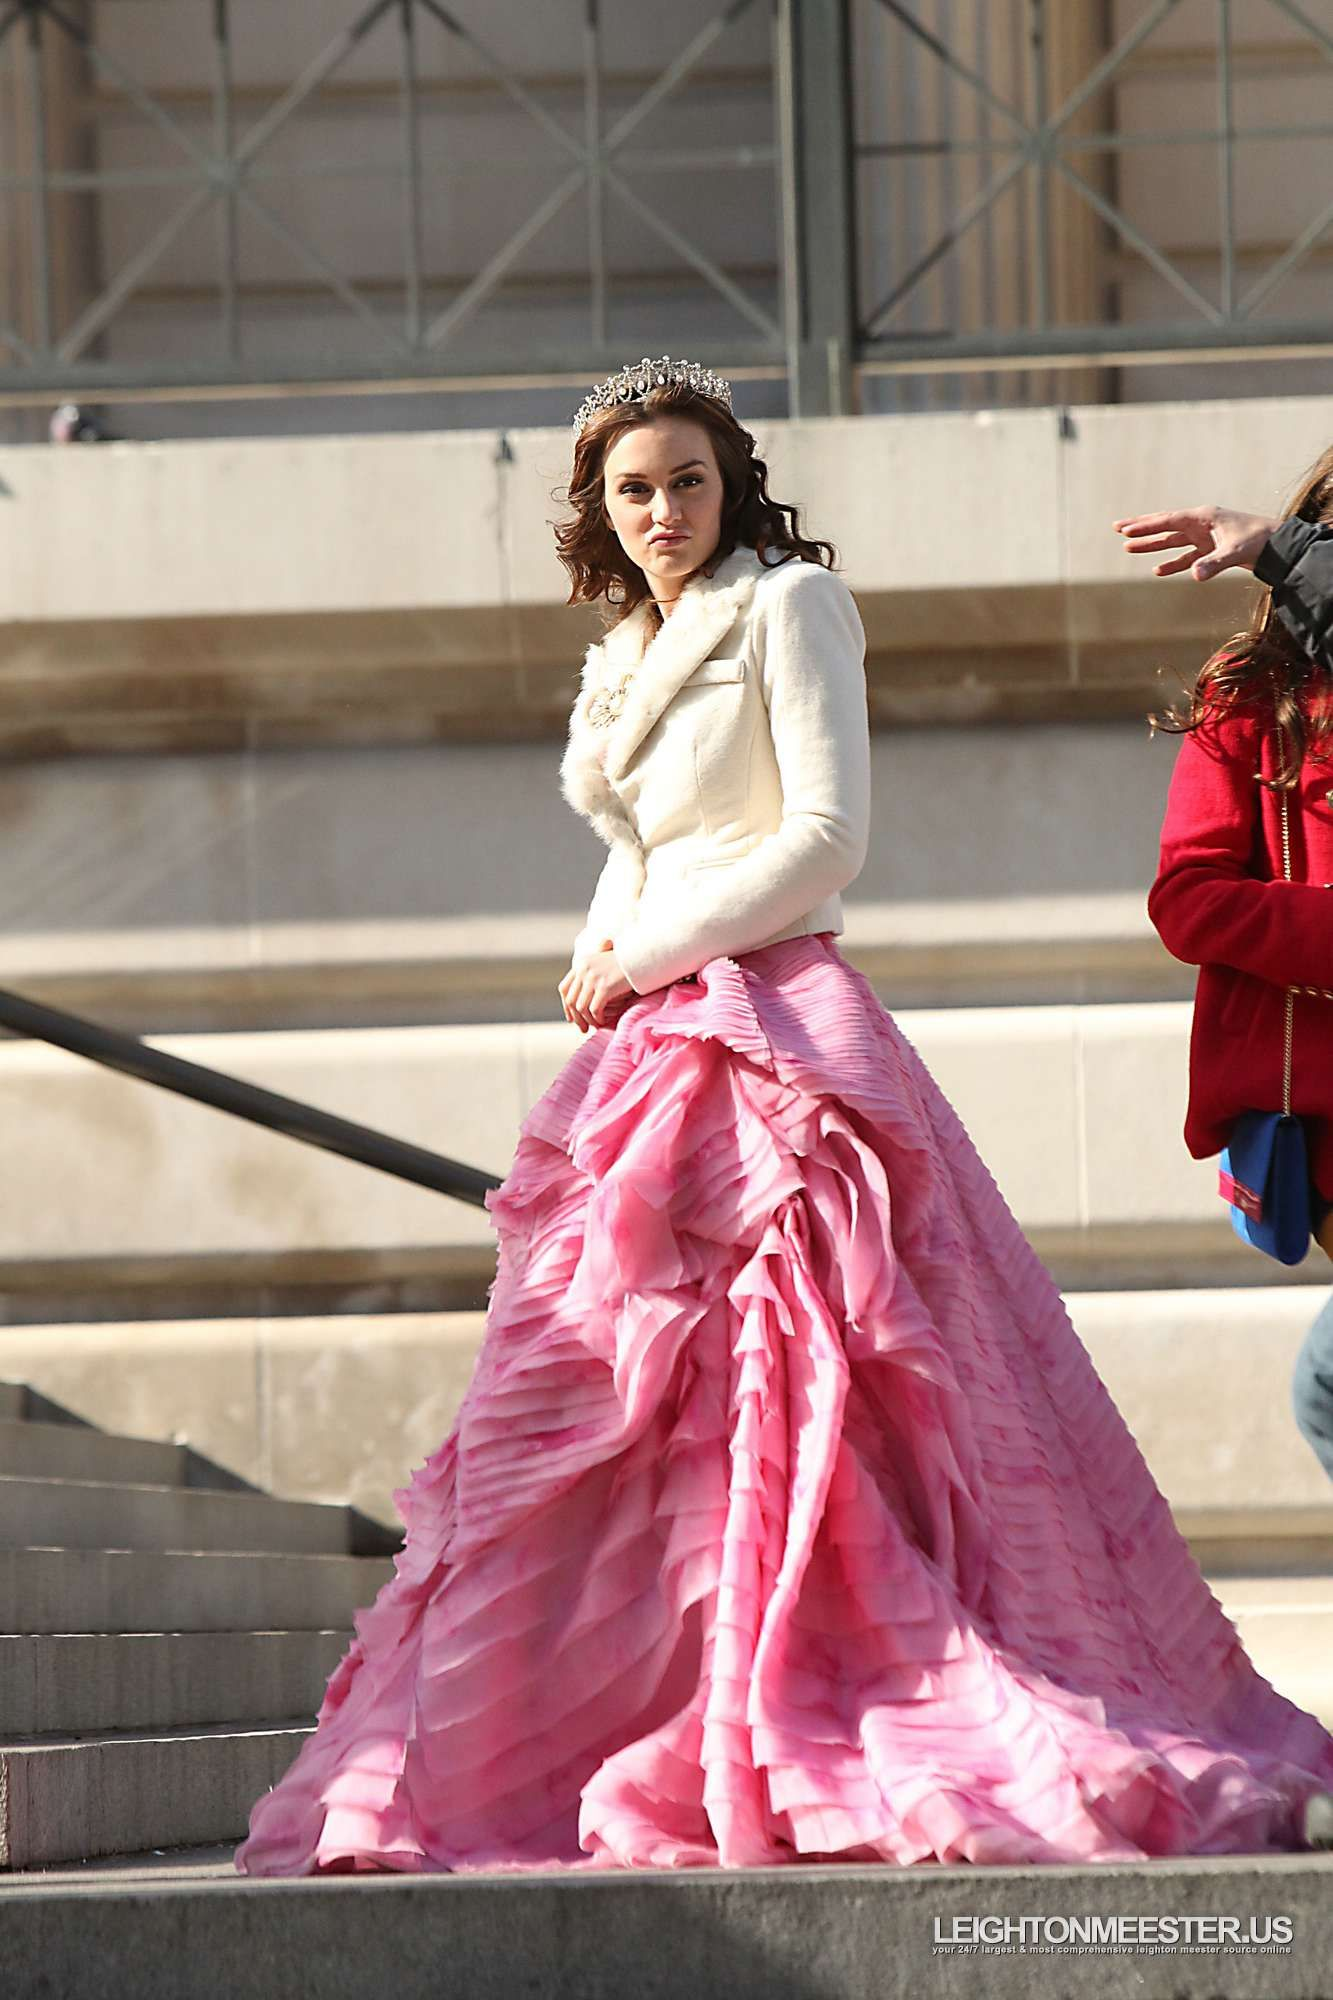 Pin de CATHERINE en blair | Pinterest | Blair waldorf, Gossip ...